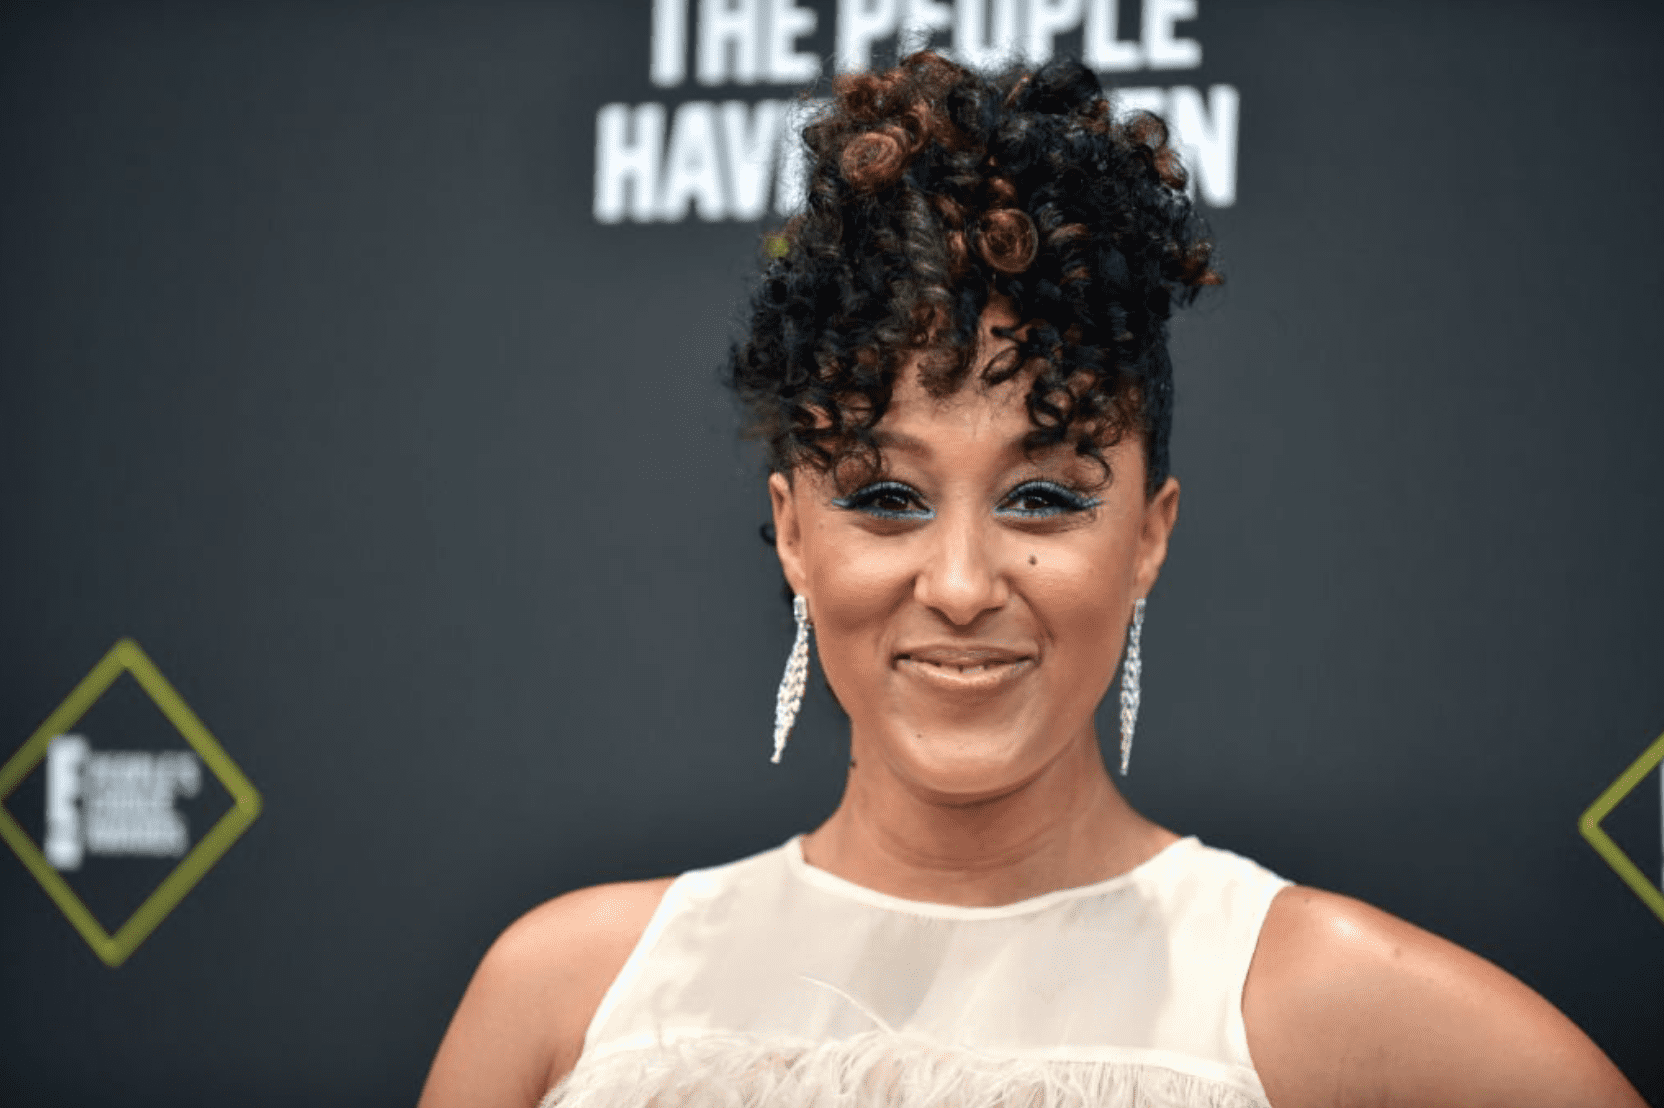 Tamera Mowry-Housley at the 2019 E! People's Choice Awards on November 10, 2019. | Source: Getty Images